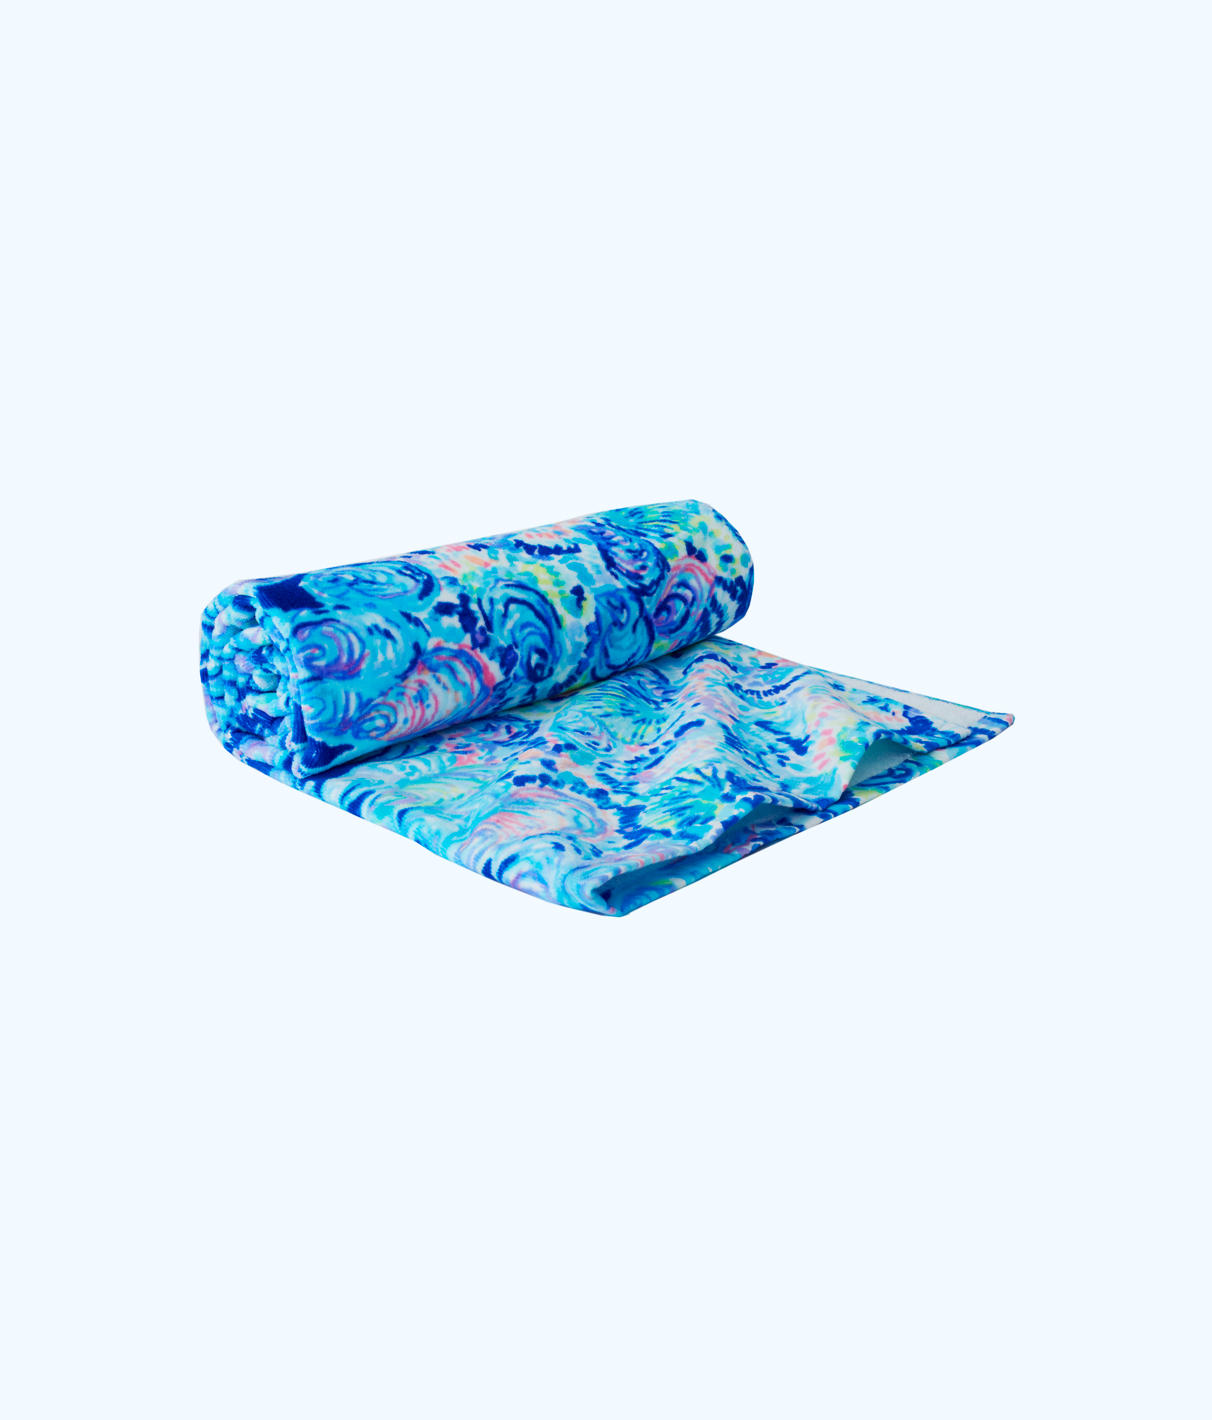 Lilly Pulitzer Lilly Pulitzer Printed Beach Towel